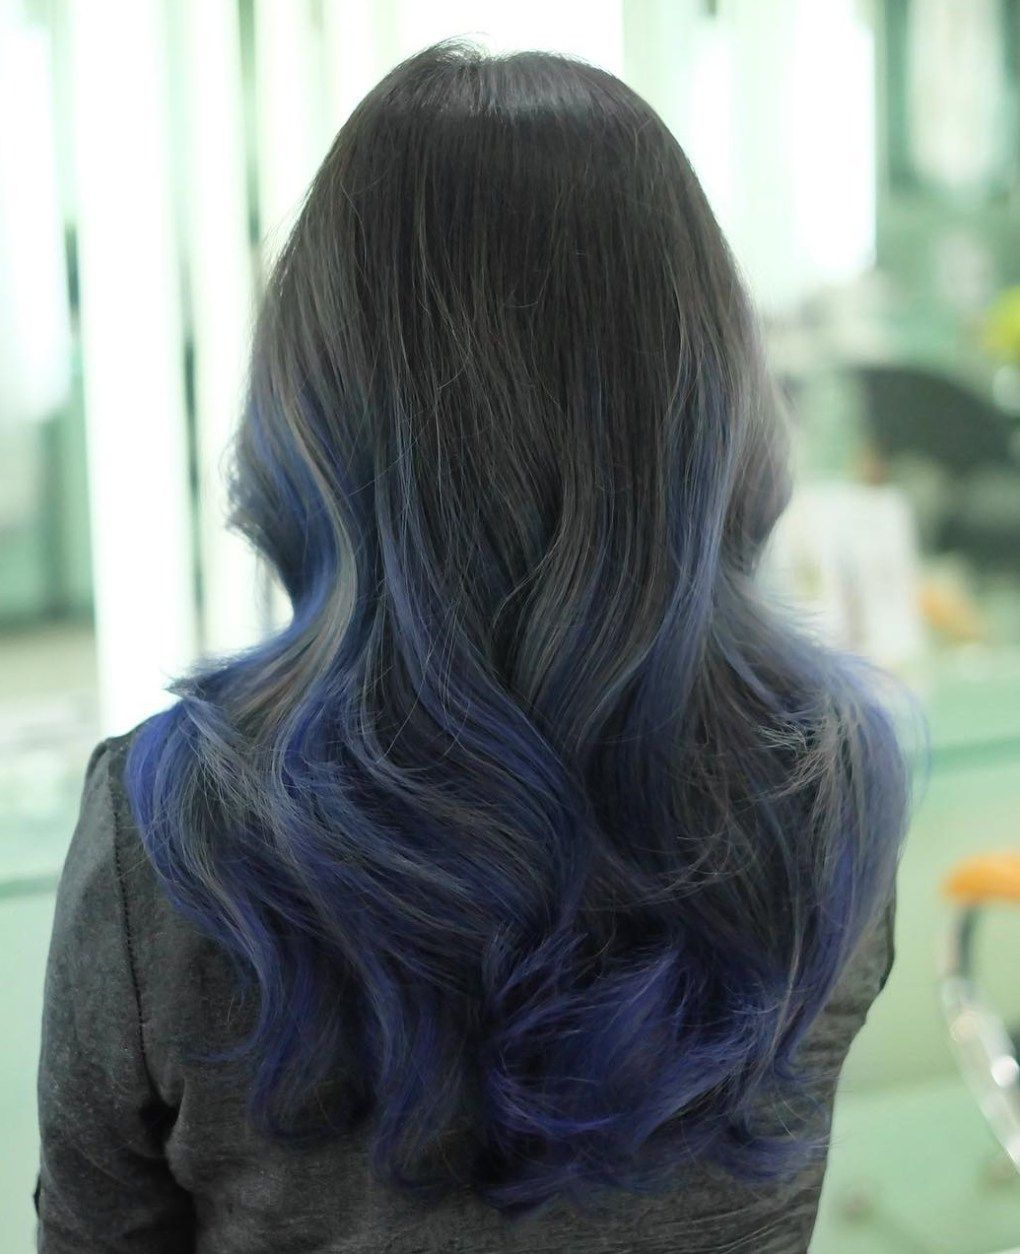 colombre combinations that put pop of color in hair trends black